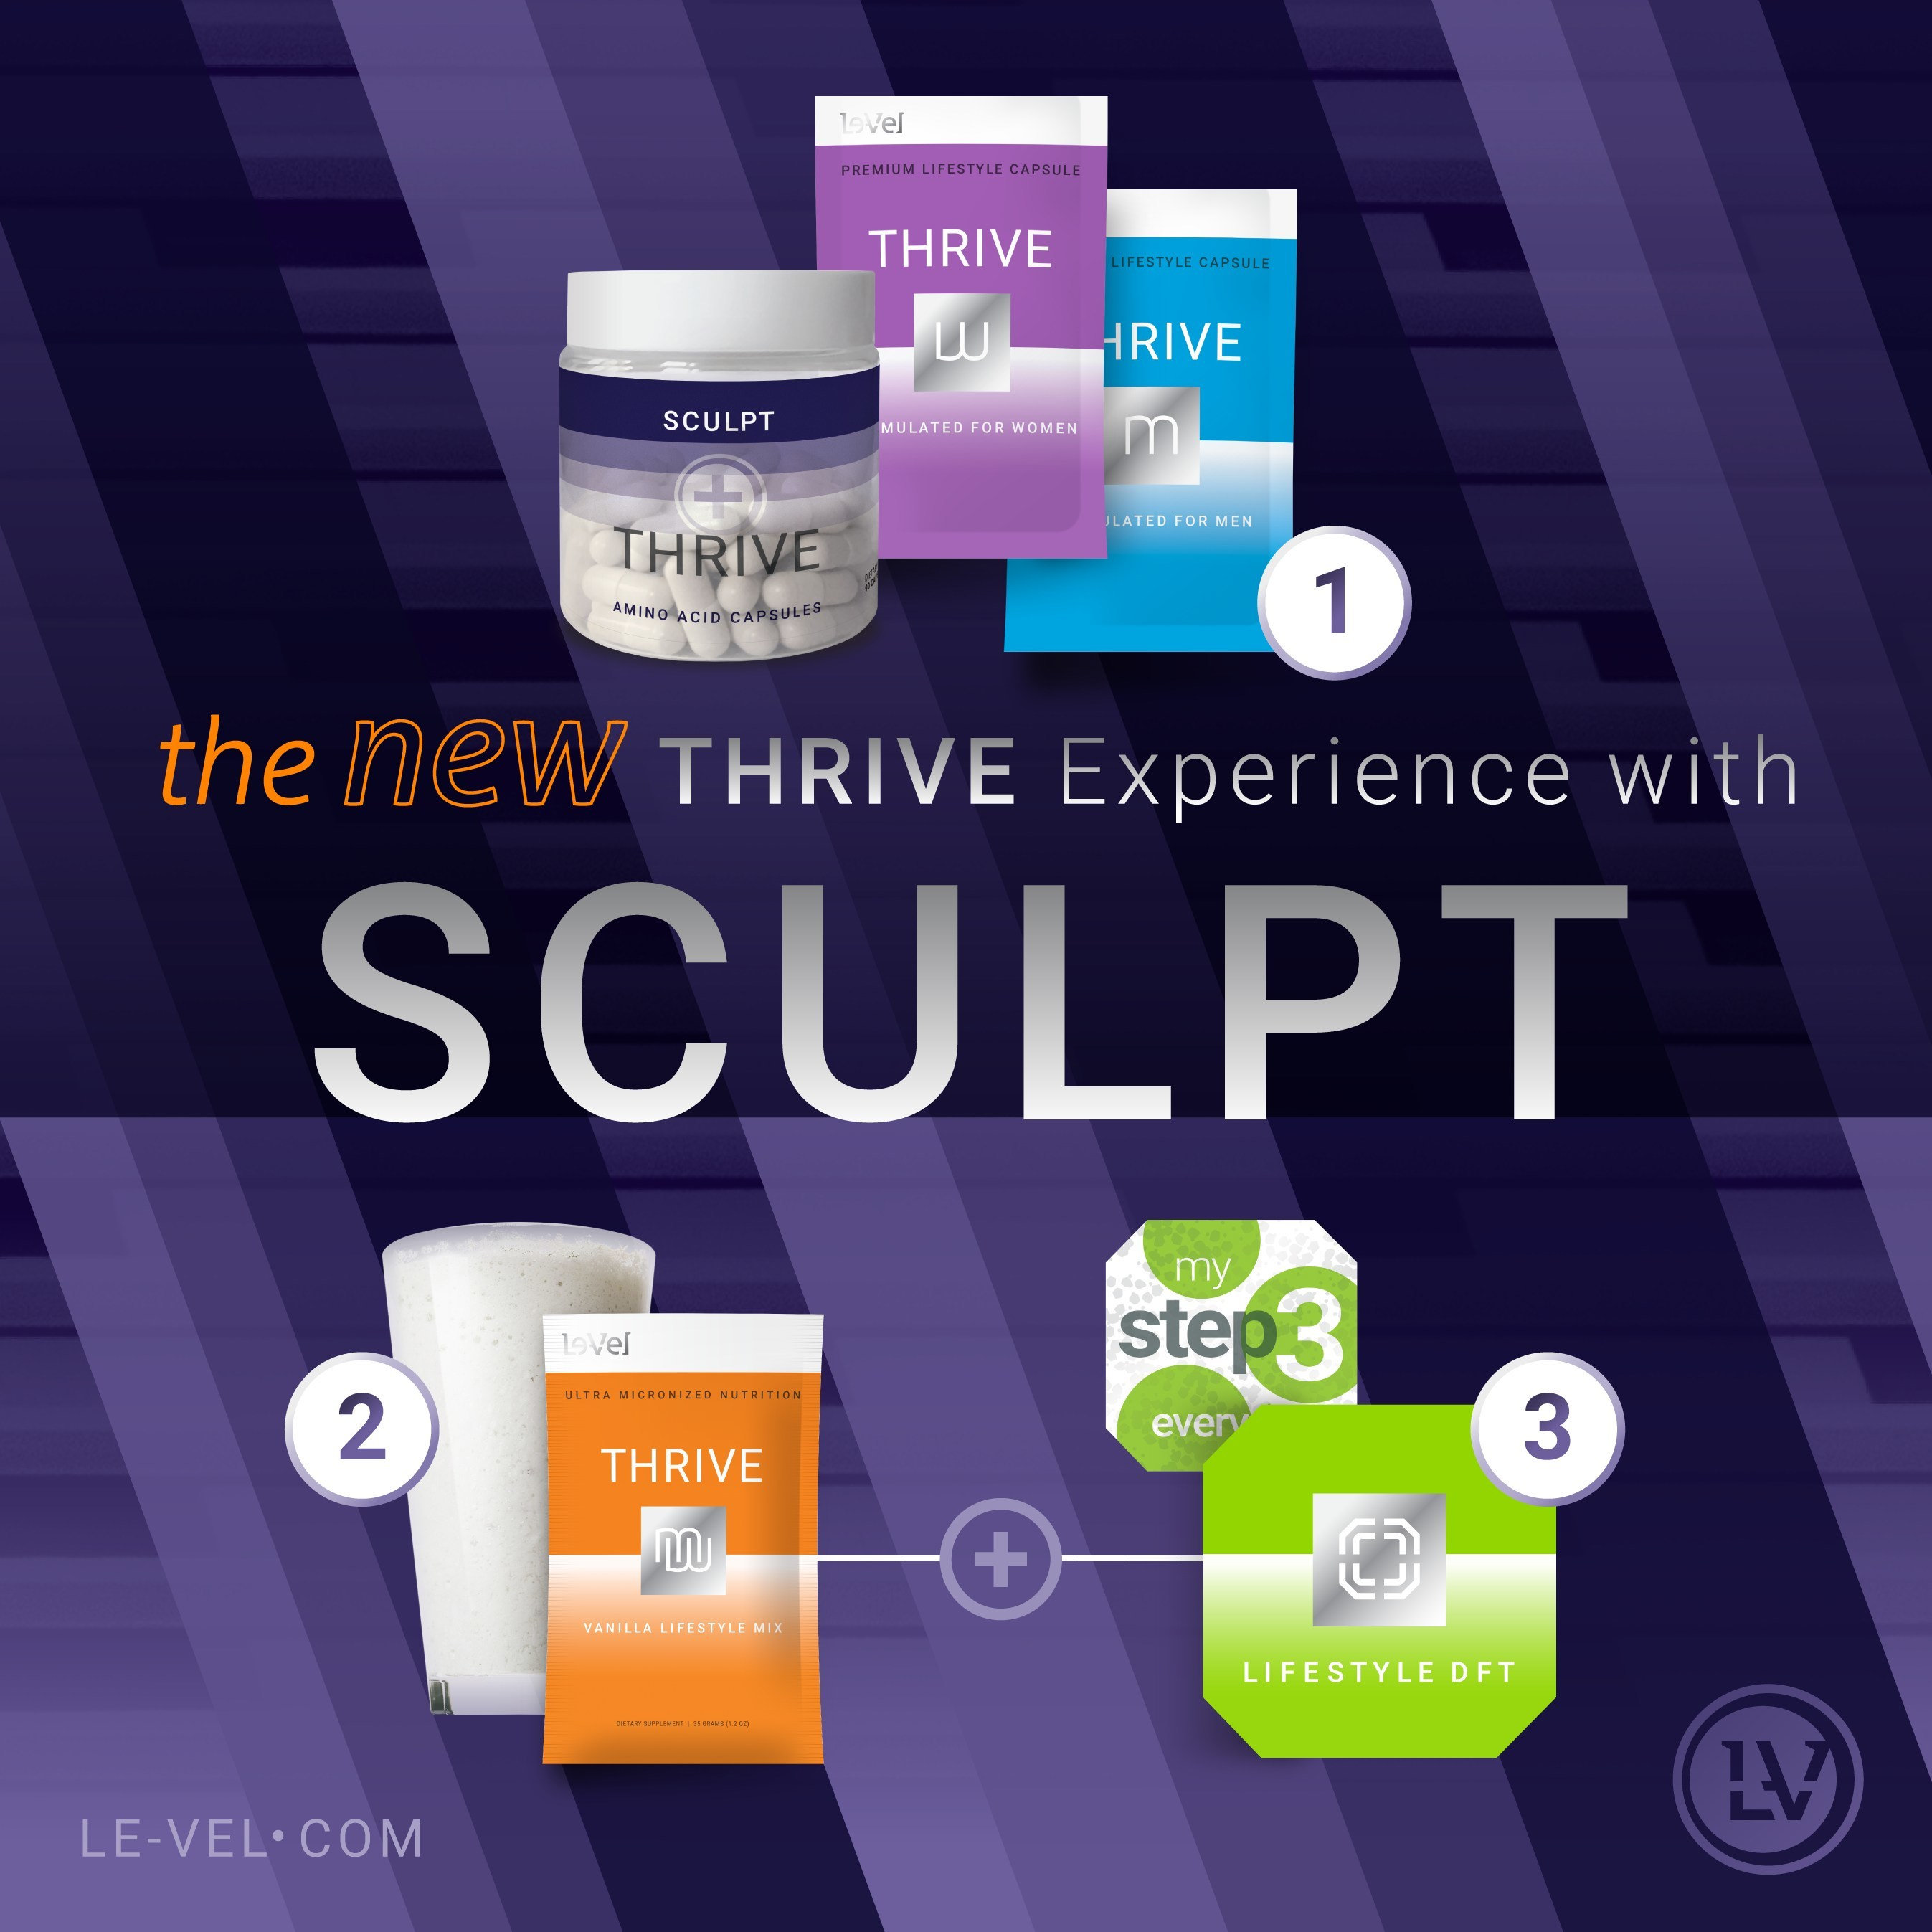 Le Vel Launches New Amino Acid Capsule